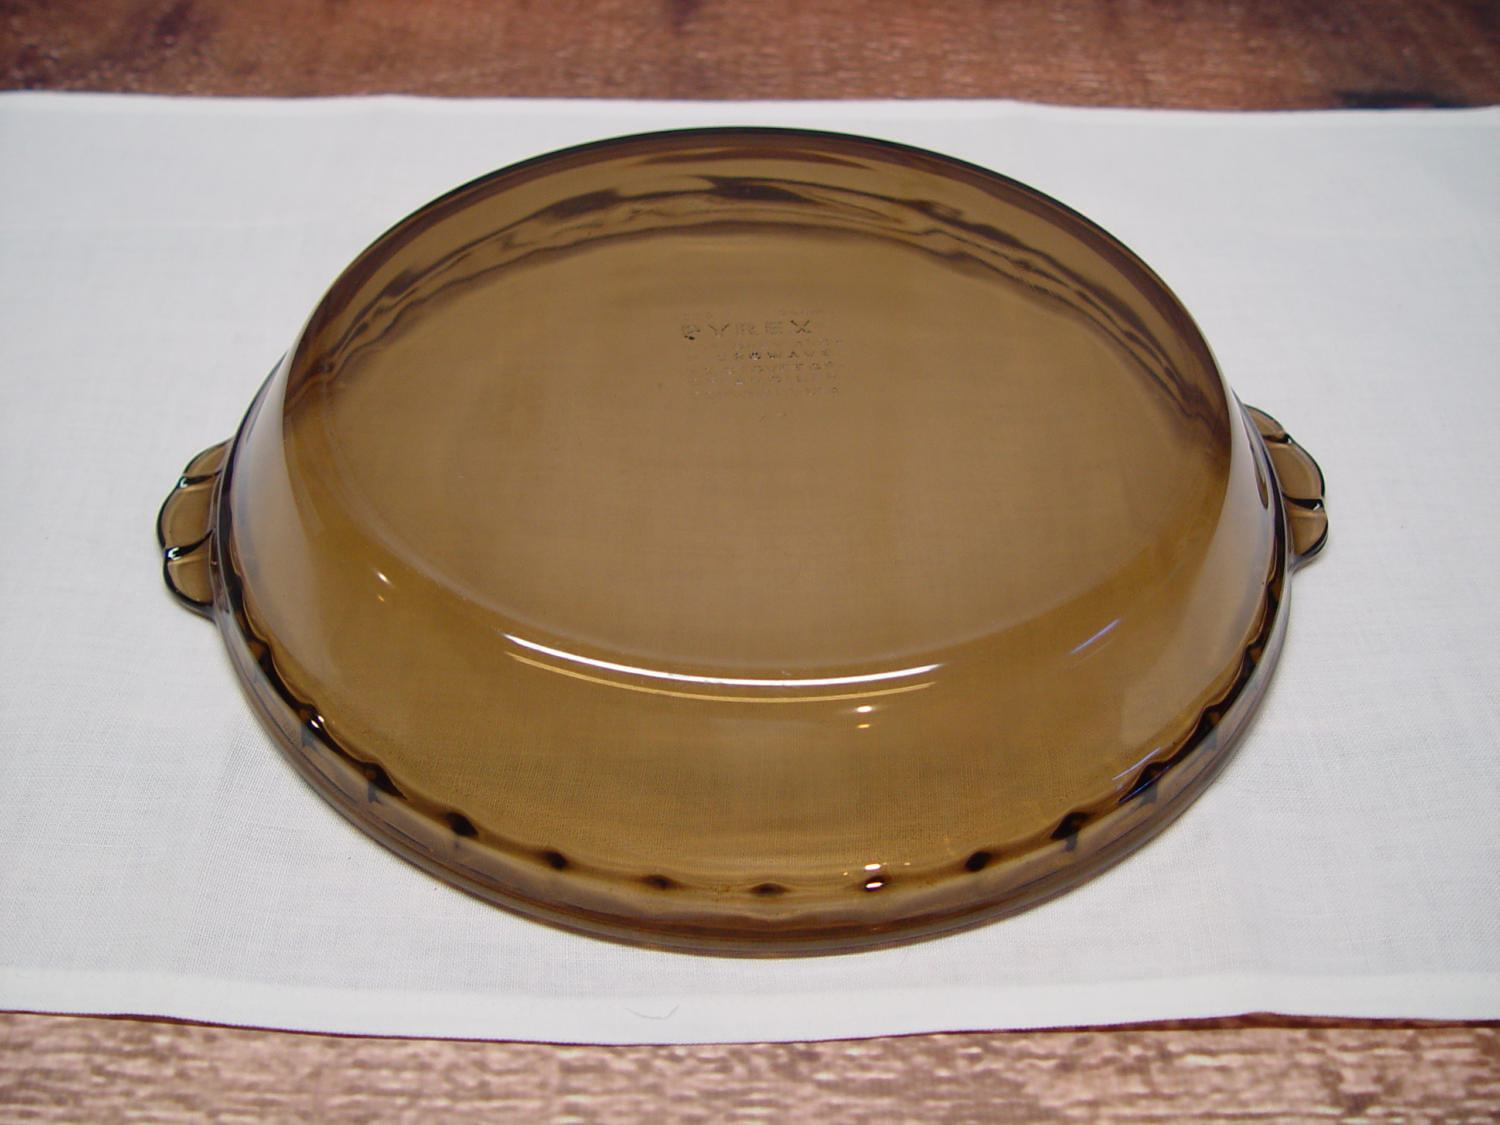 Pyrex Amber Pie Plate Fluted Edge and Handles 9 Inch Pie Pan & Pyrex Amber Pie Plate Fluted Edge and Handles 9 Inch Pie Pan from ...